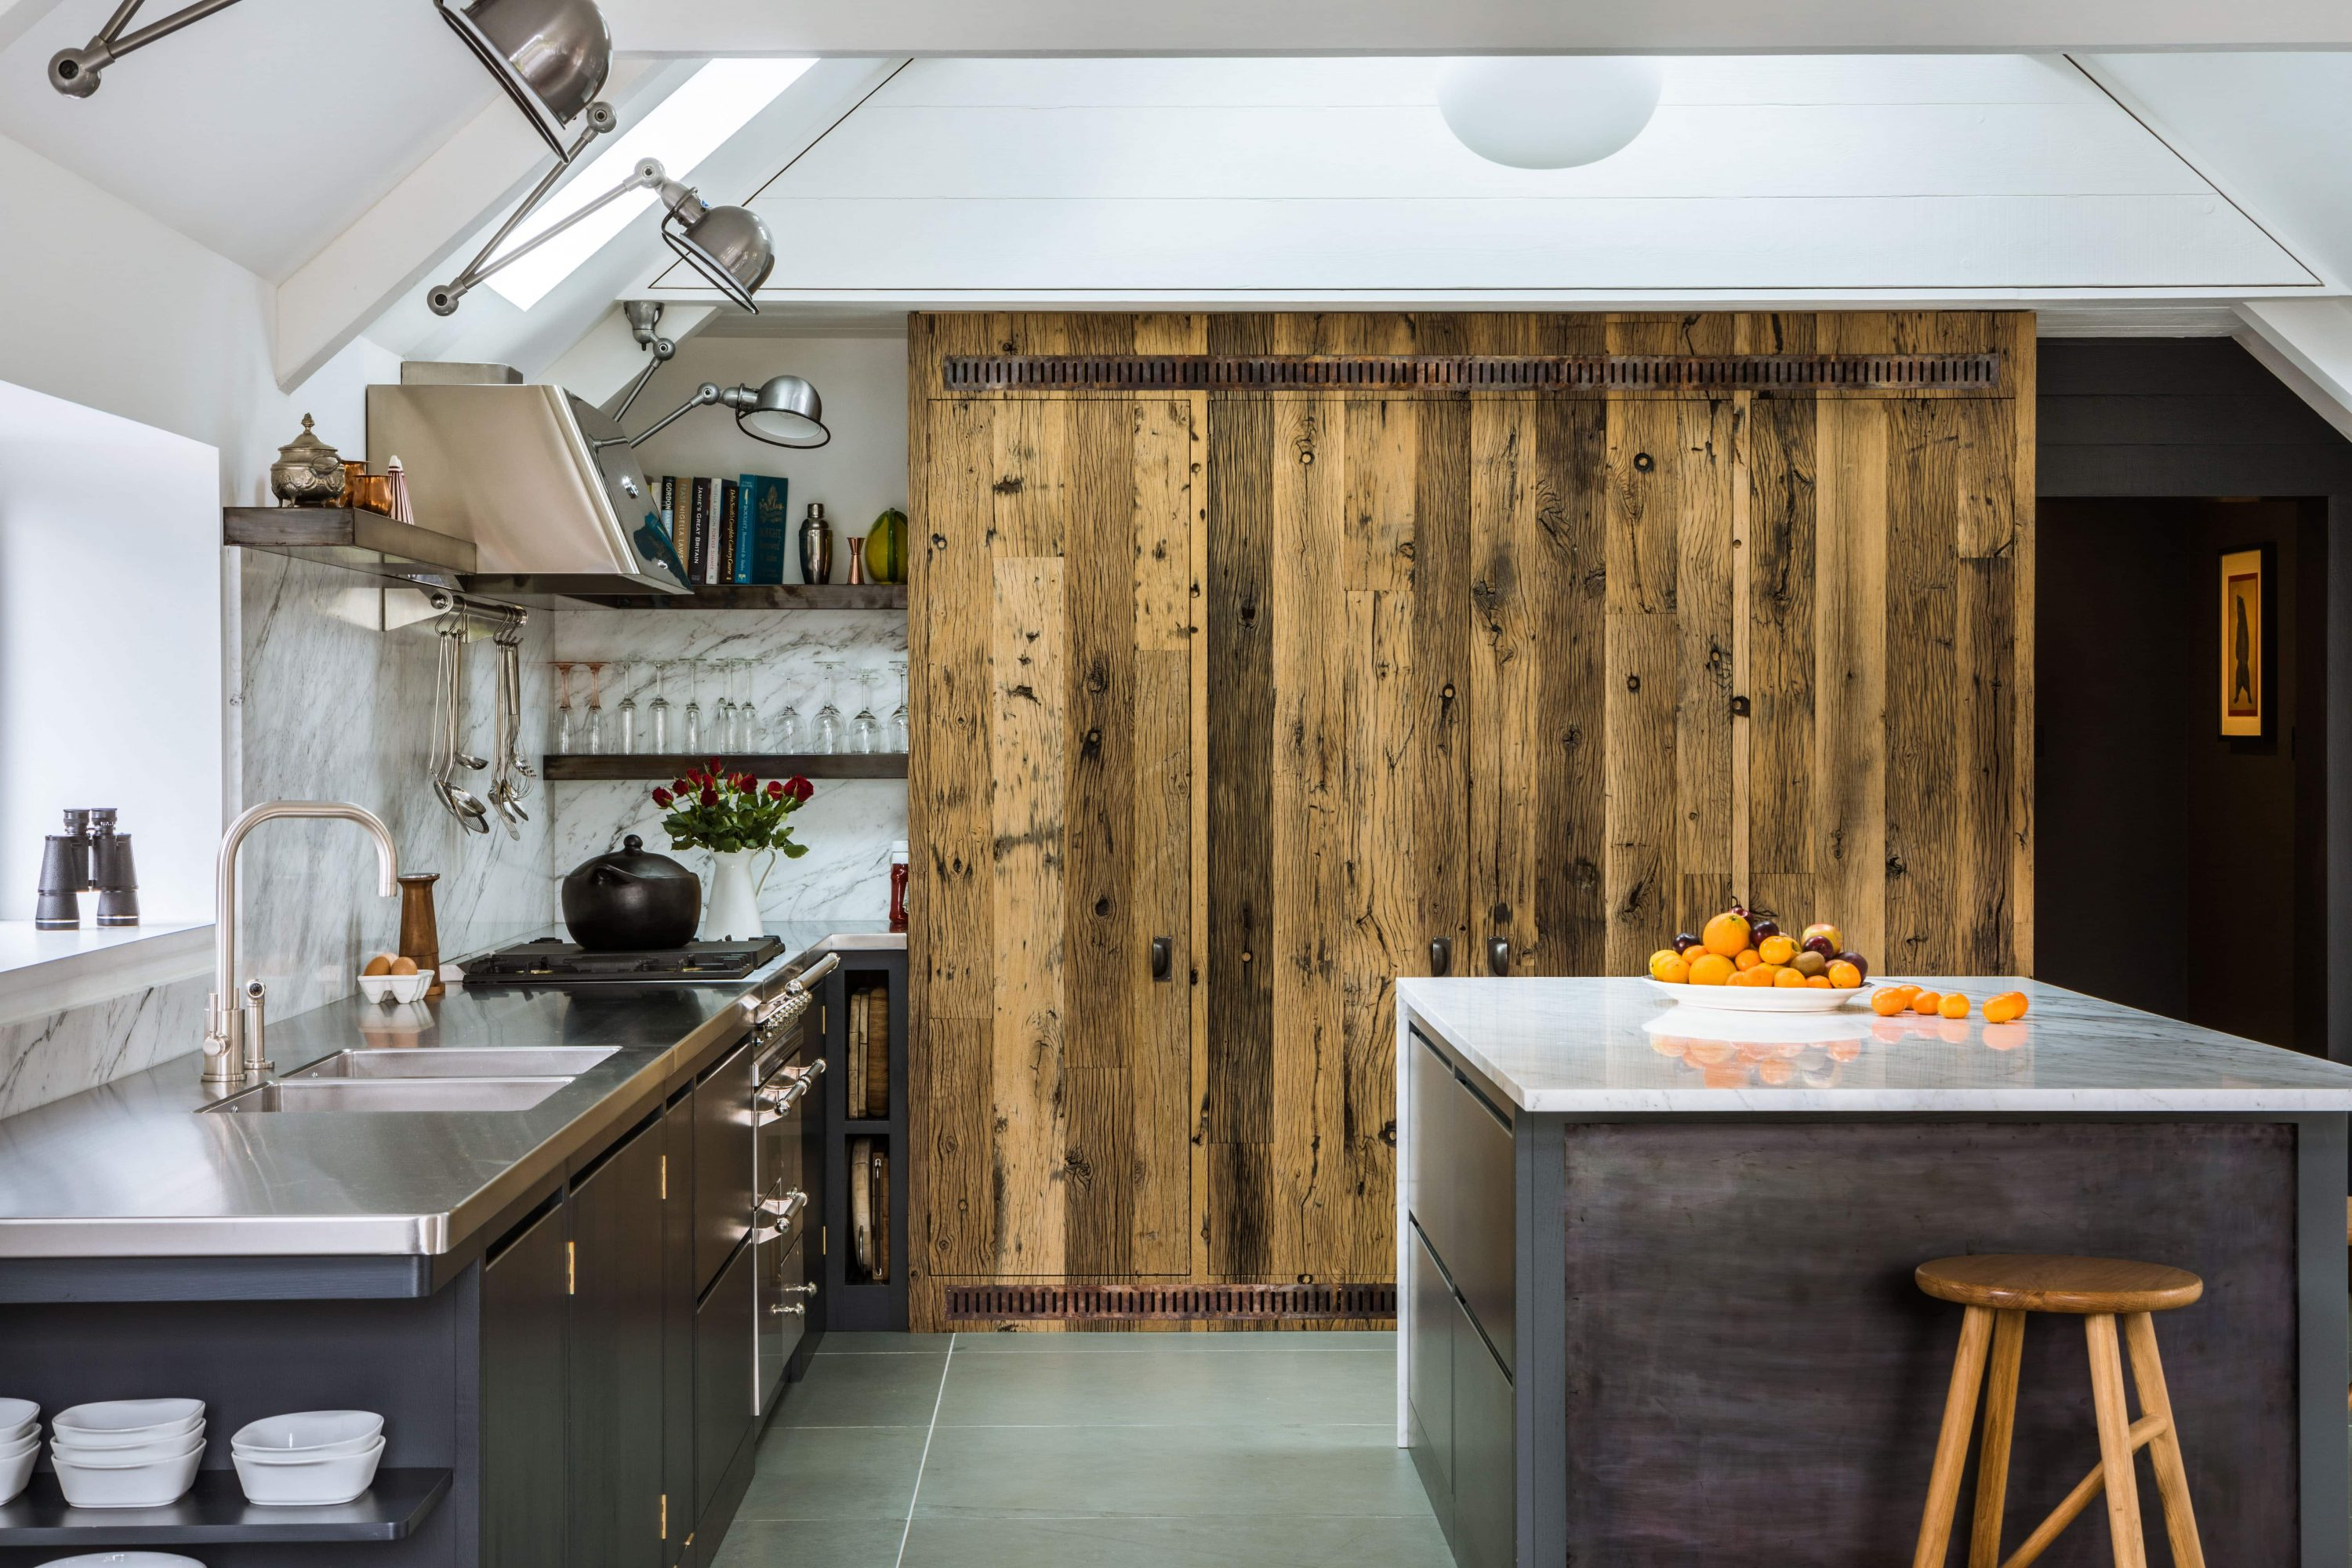 Steel and Marble Kitchen with Reclaimed Wood Feature Sustainable